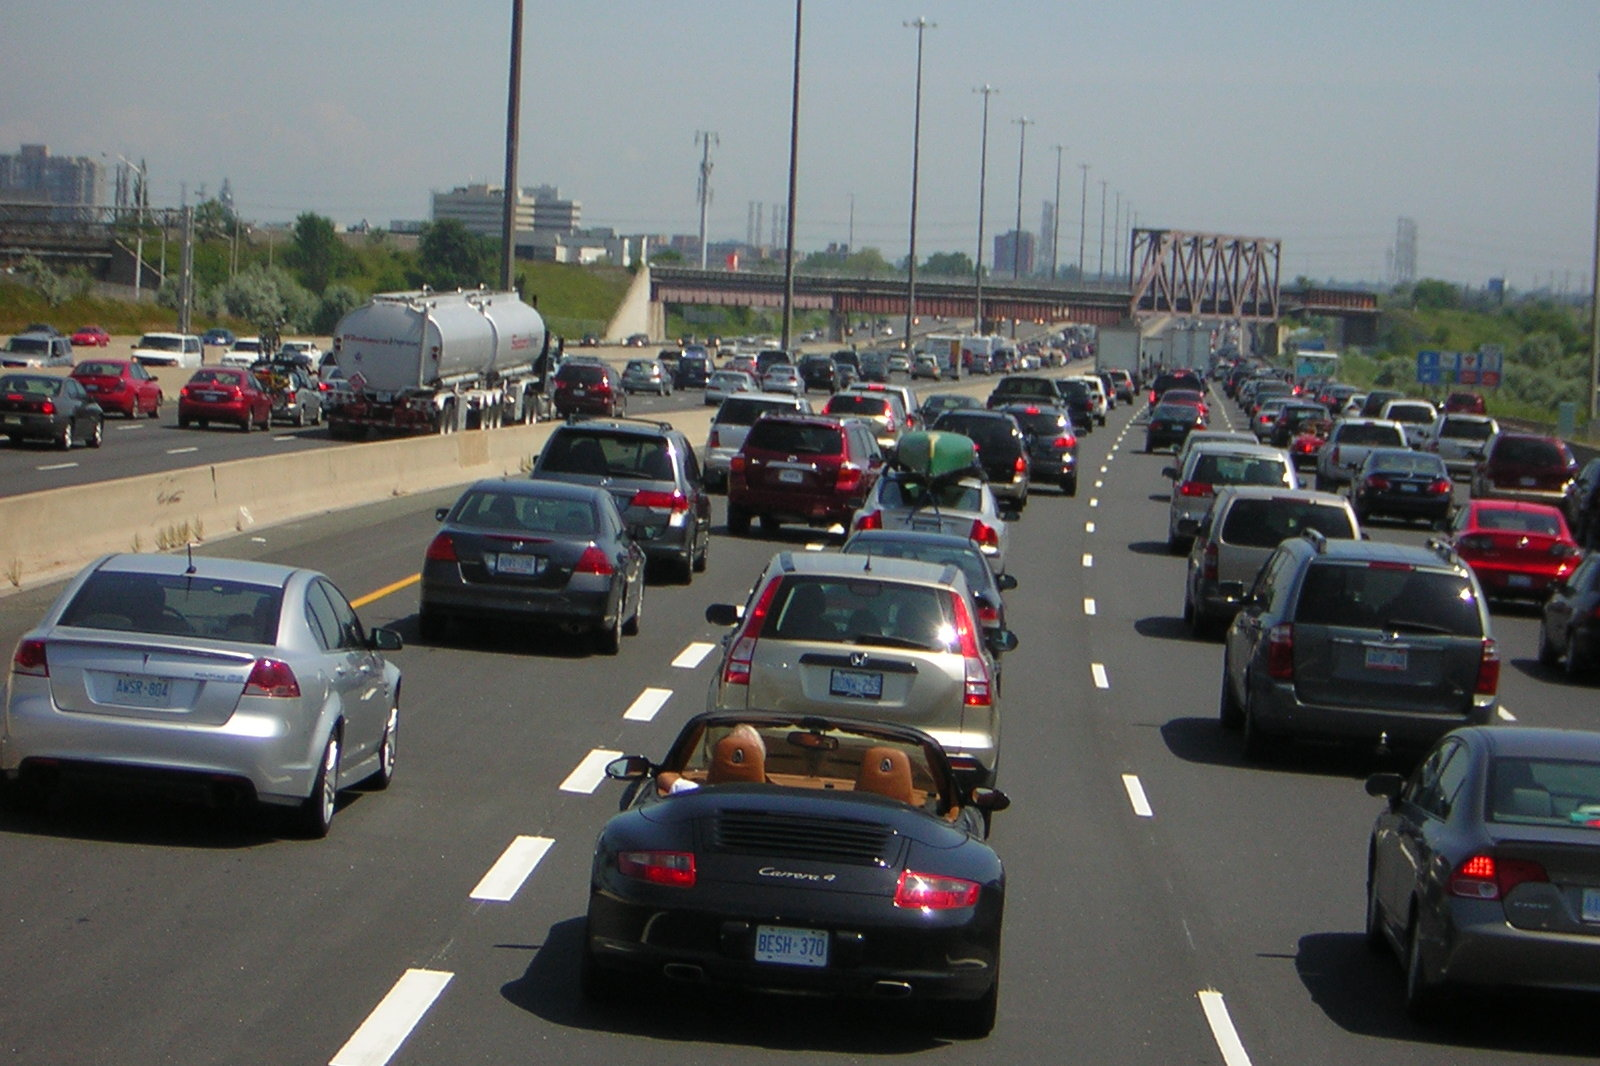 5 U.S. Cities Rank Among World's Most Traffic-Congested Areas